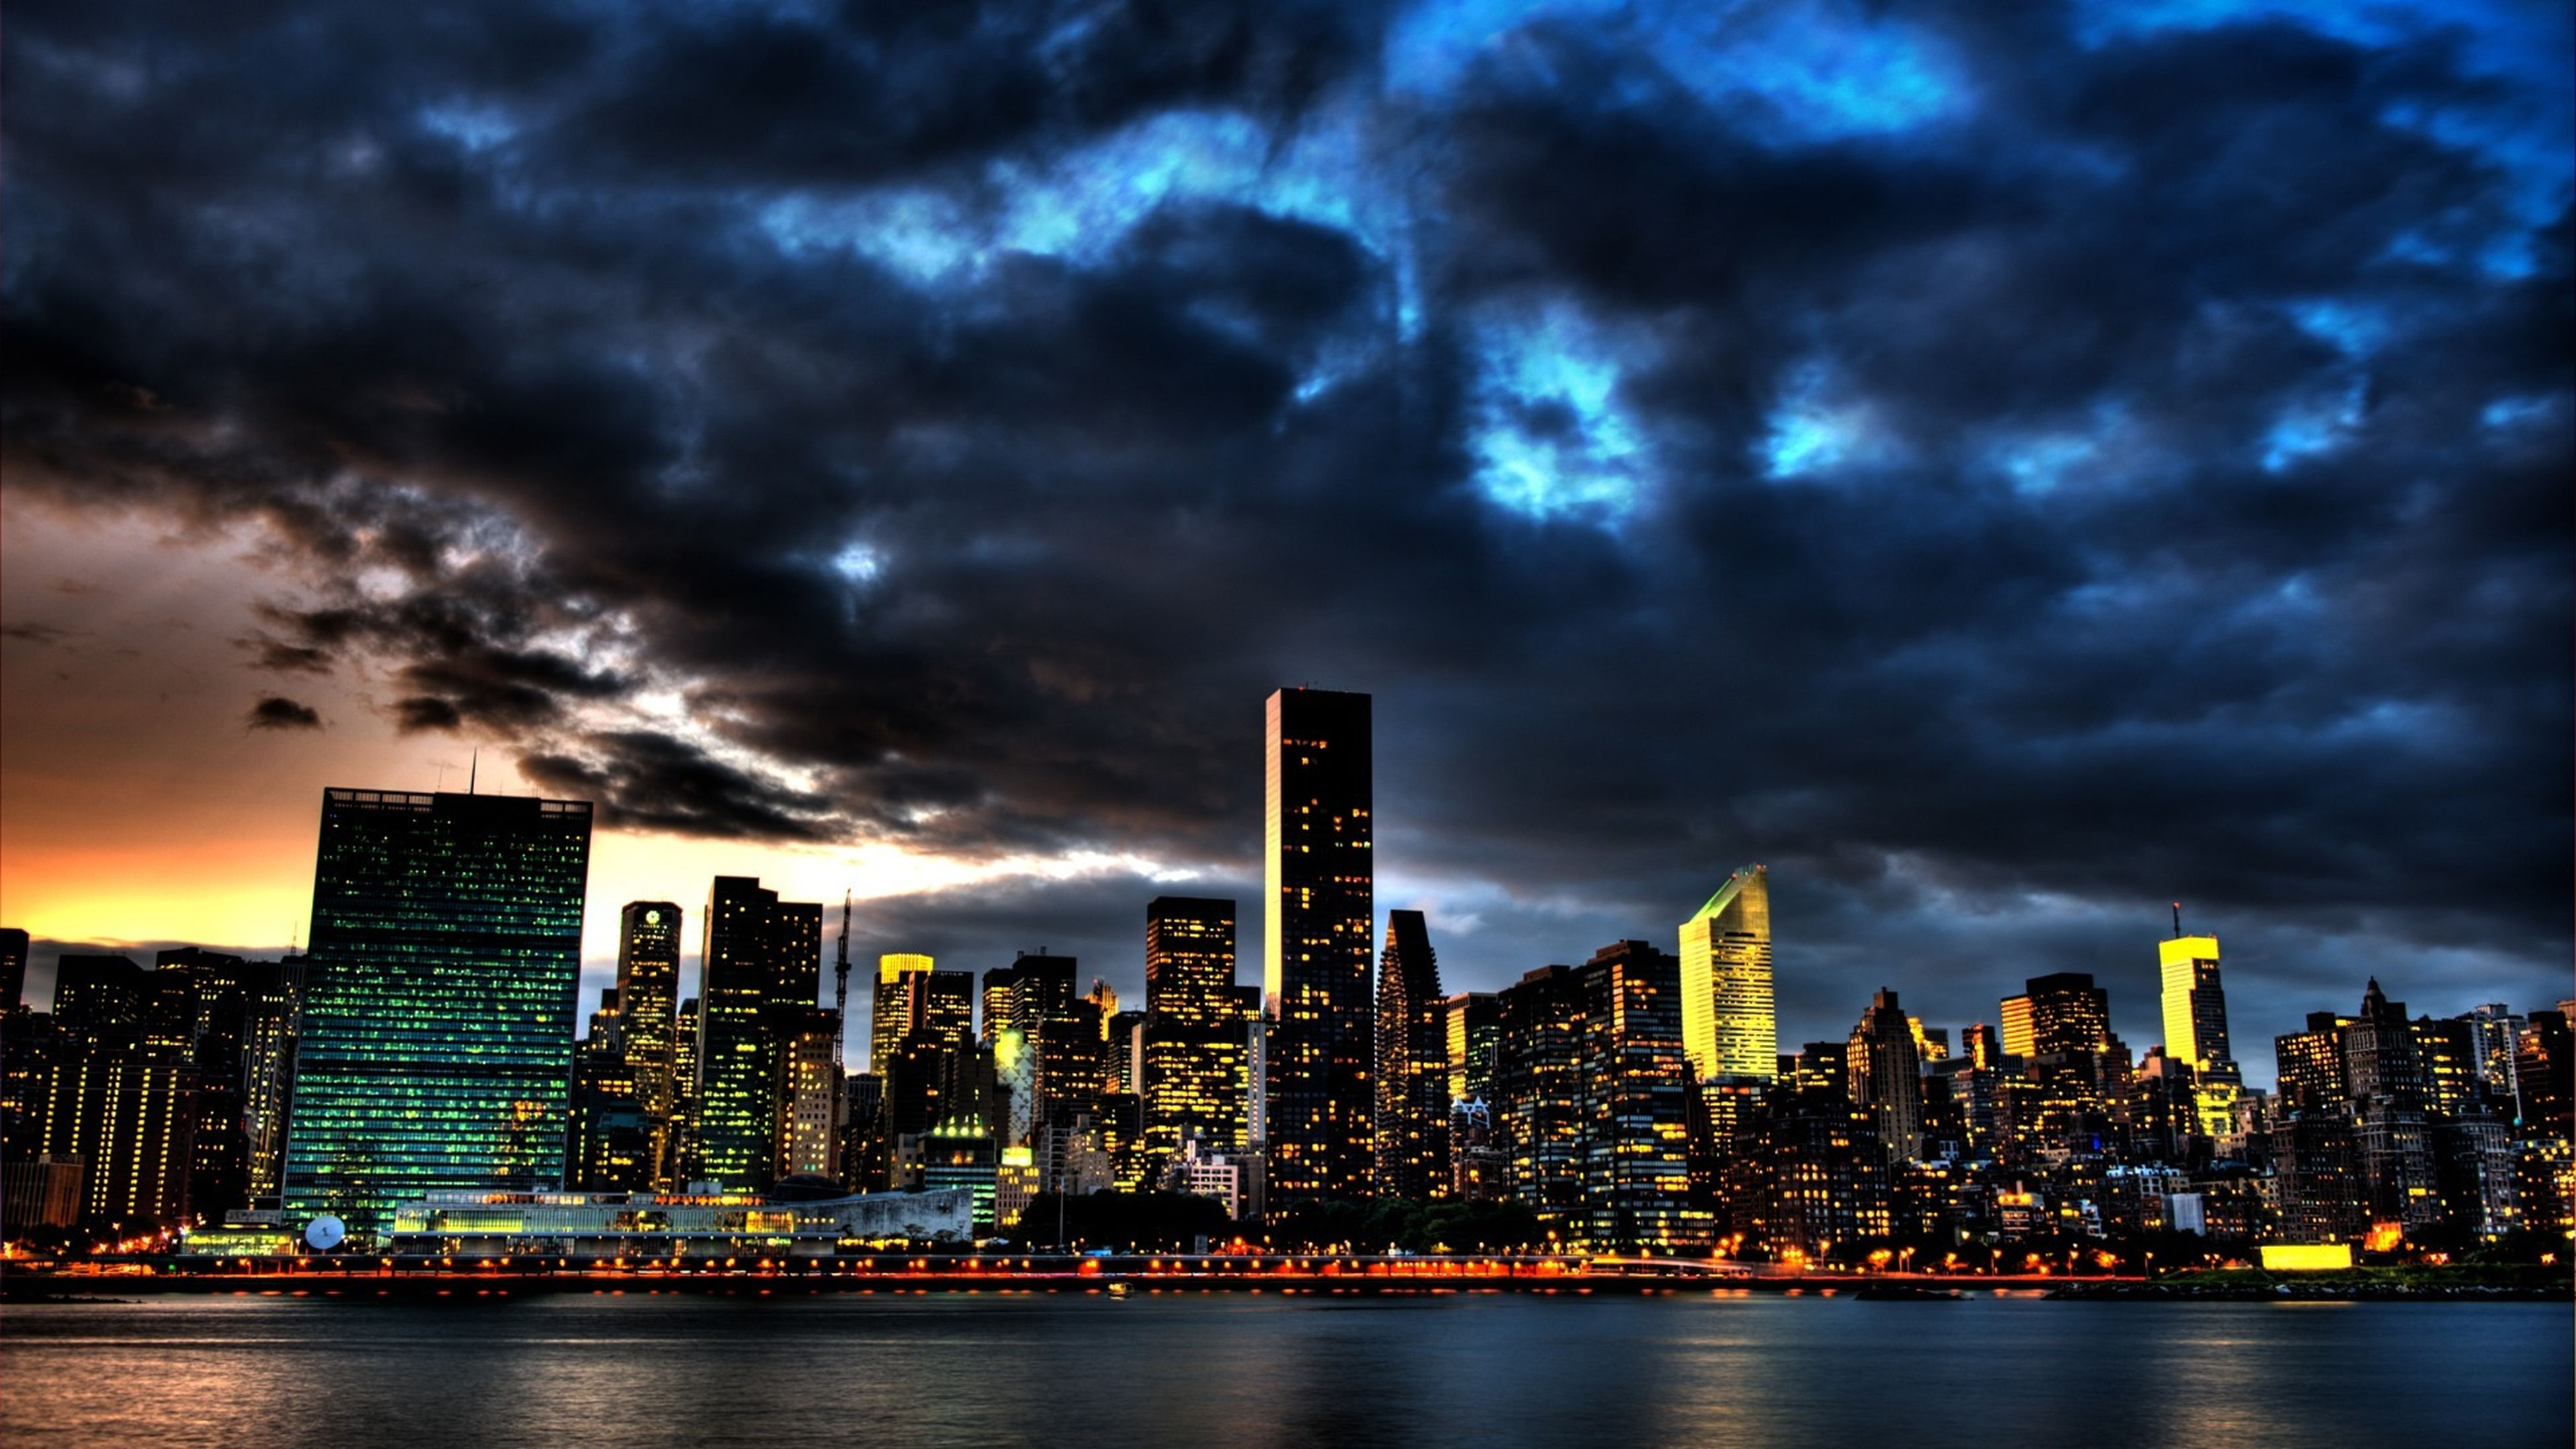 city, building exterior, architecture, cityscape, sky, built structure, cloud - sky, skyscraper, water, waterfront, illuminated, cloudy, urban skyline, modern, river, weather, storm cloud, dusk, skyline, tall - high